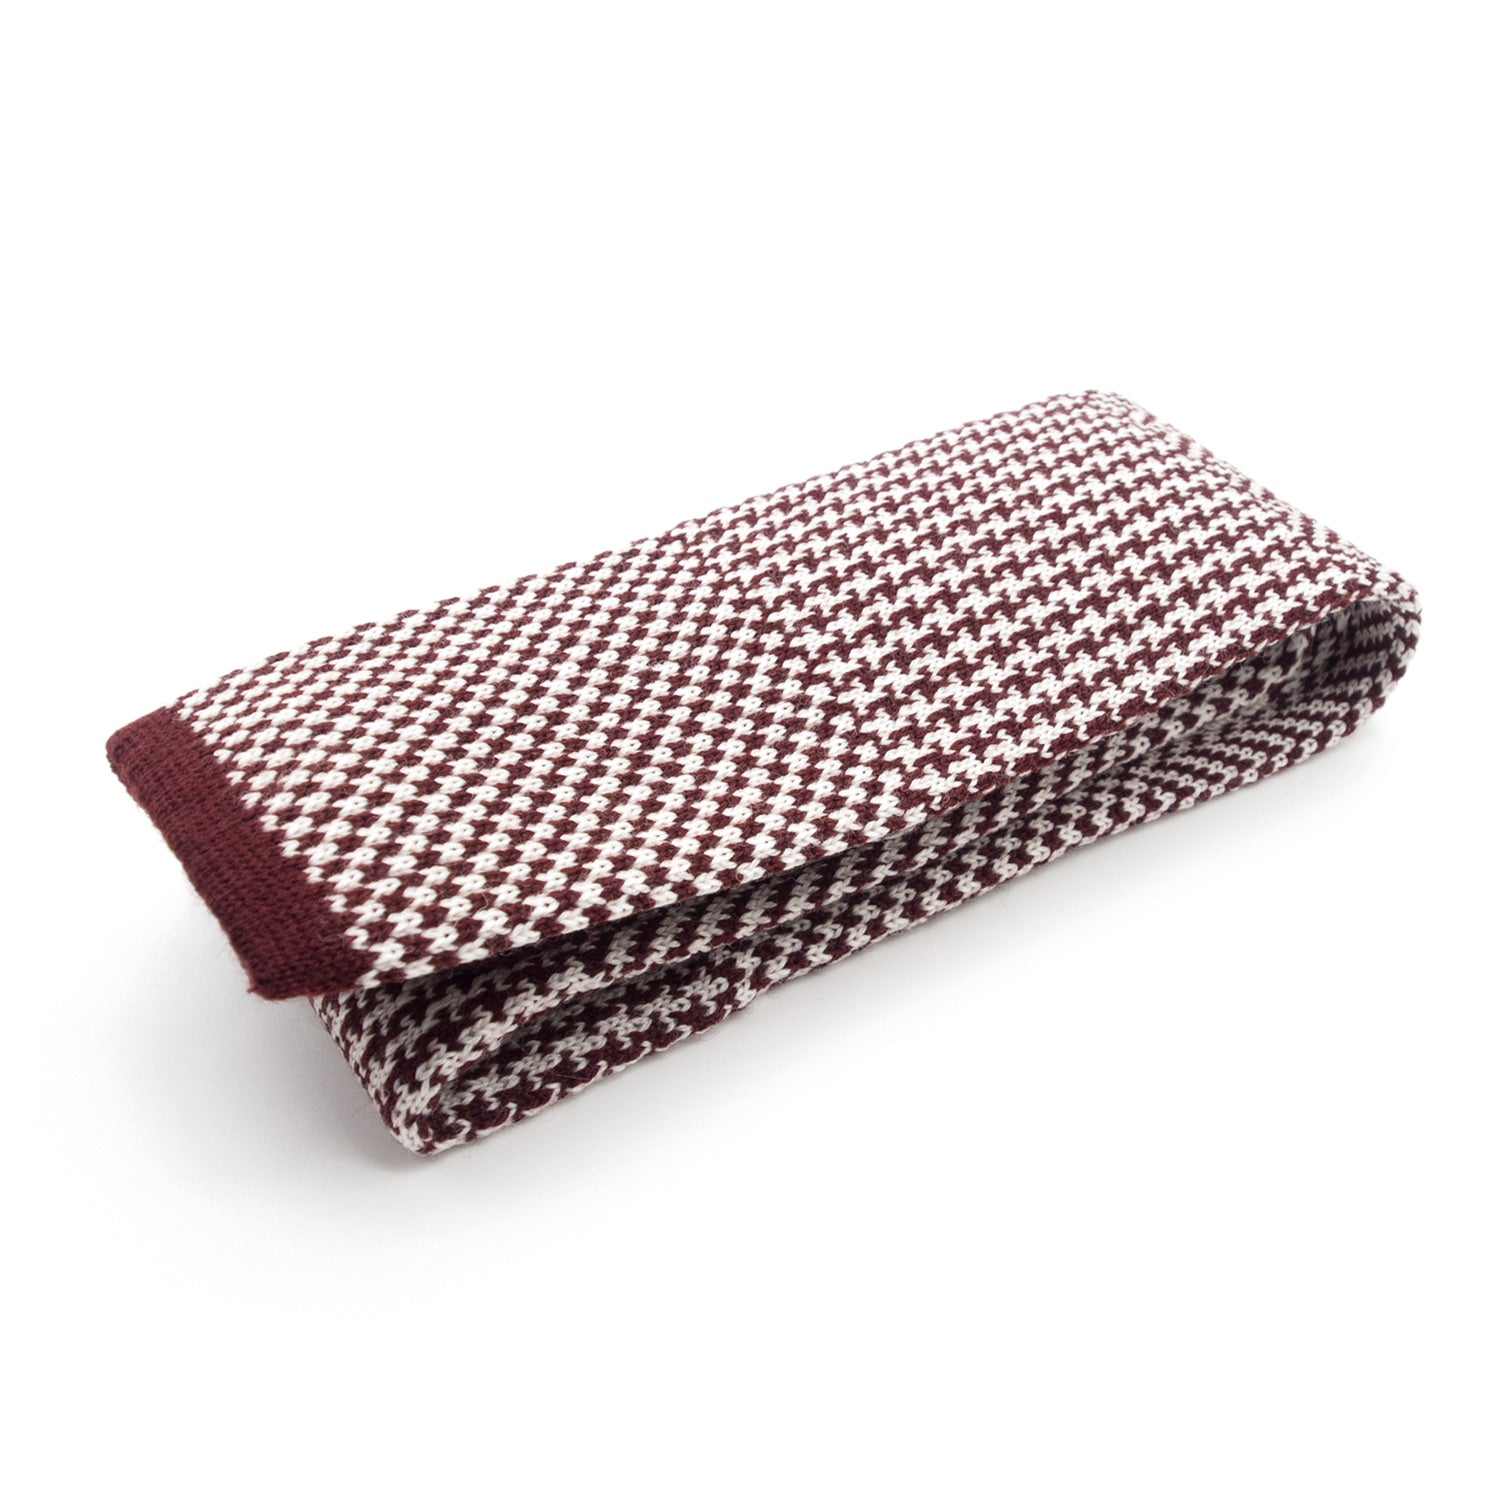 Doria & Dojola Mixed Pattern Wool Tie. 100% Biellese Wool. Made in Italy. Dark Red & Cream.